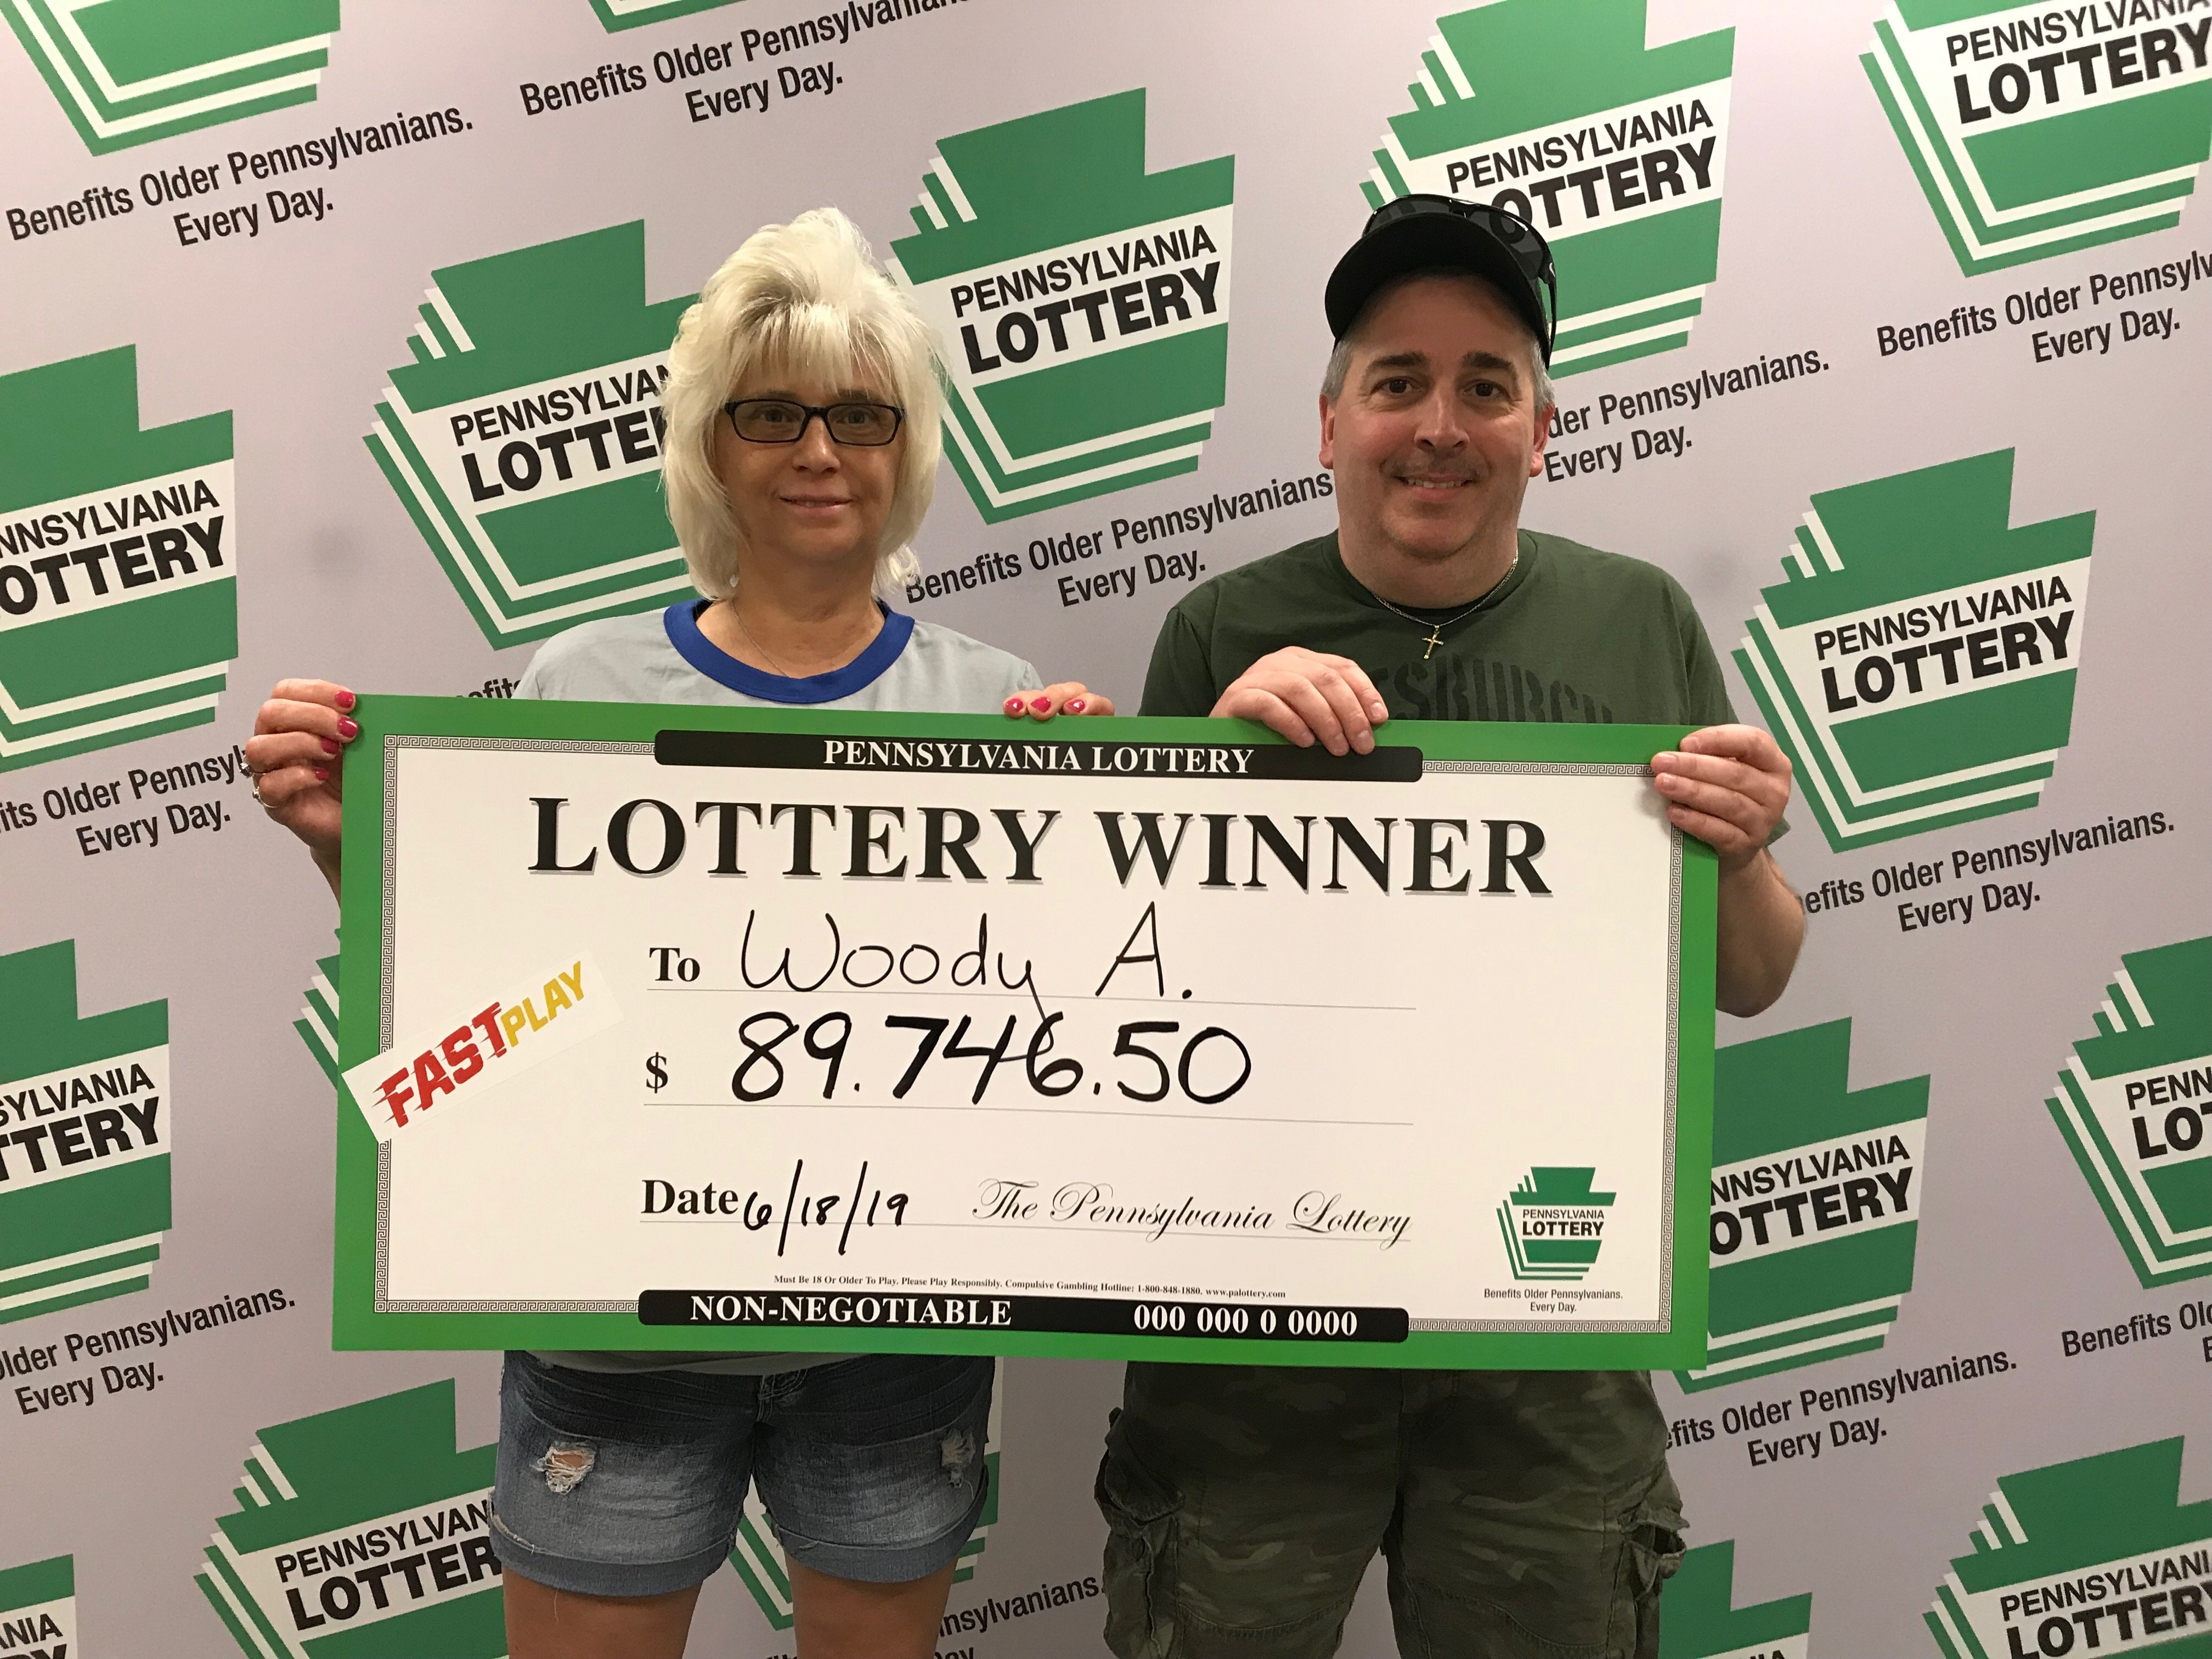 Lancaster County Man Wins More Than $89,000 on PA Lottery